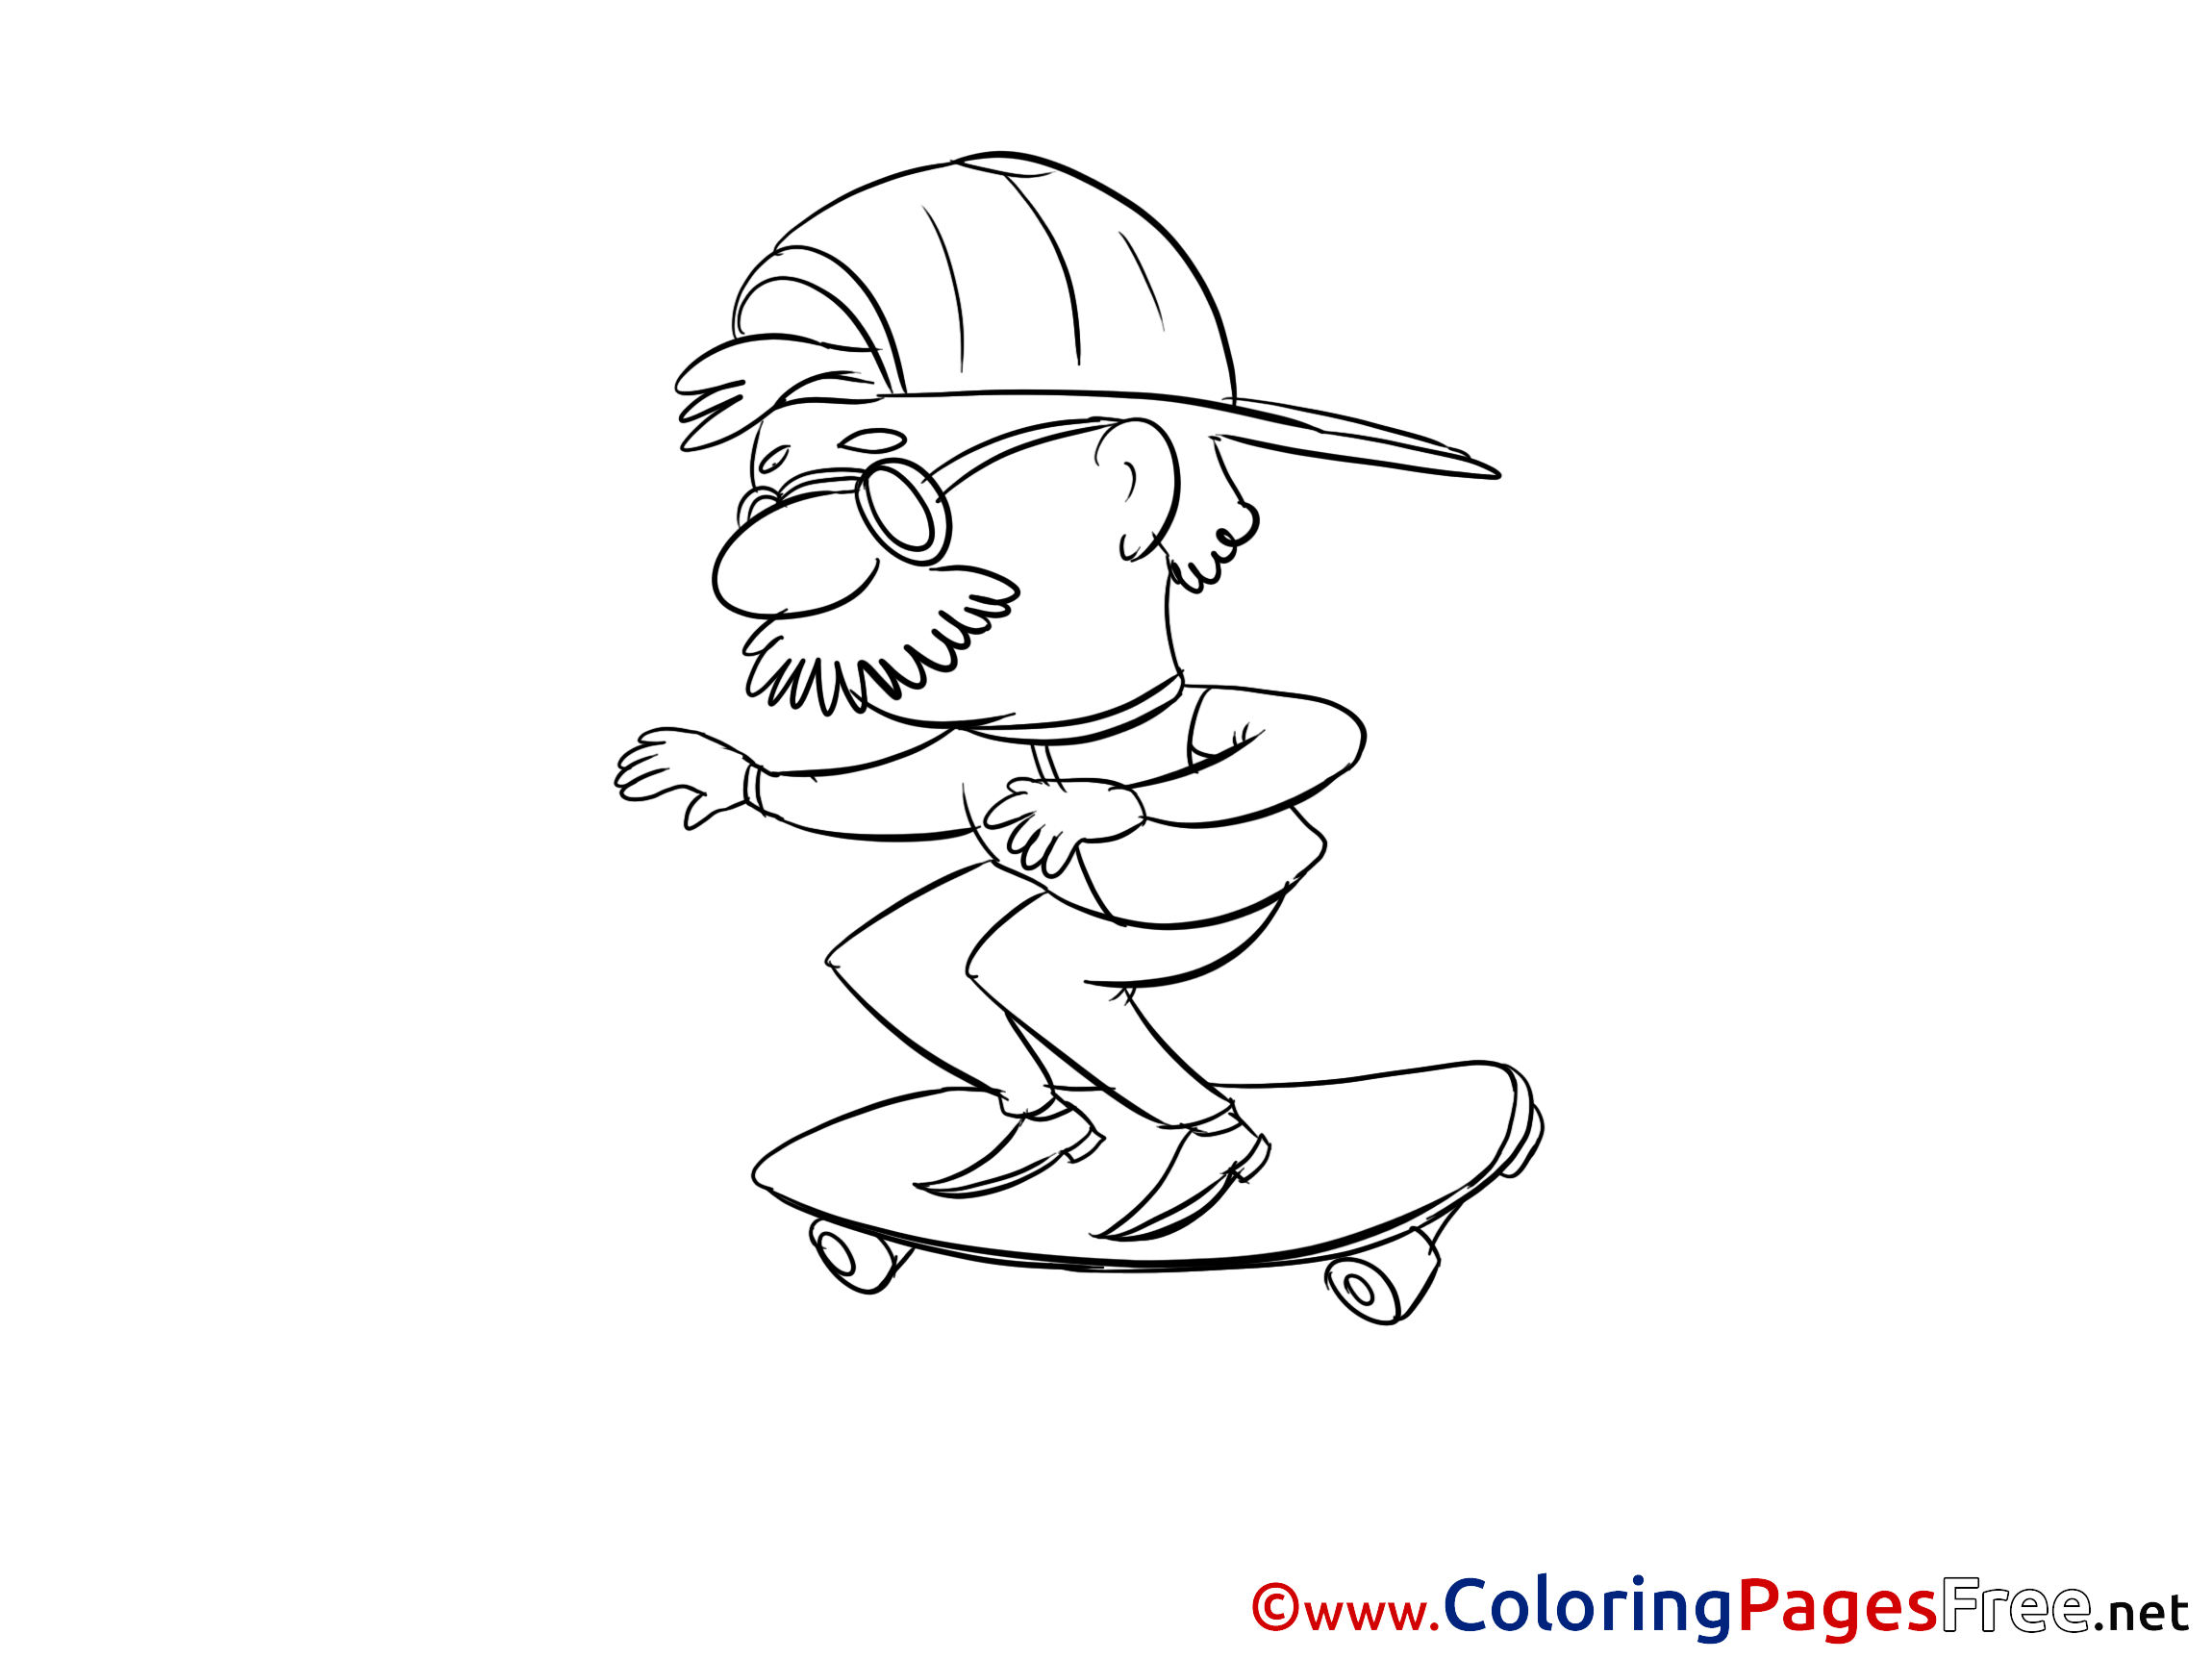 Skateboard Coloring Pages | 1725x2300